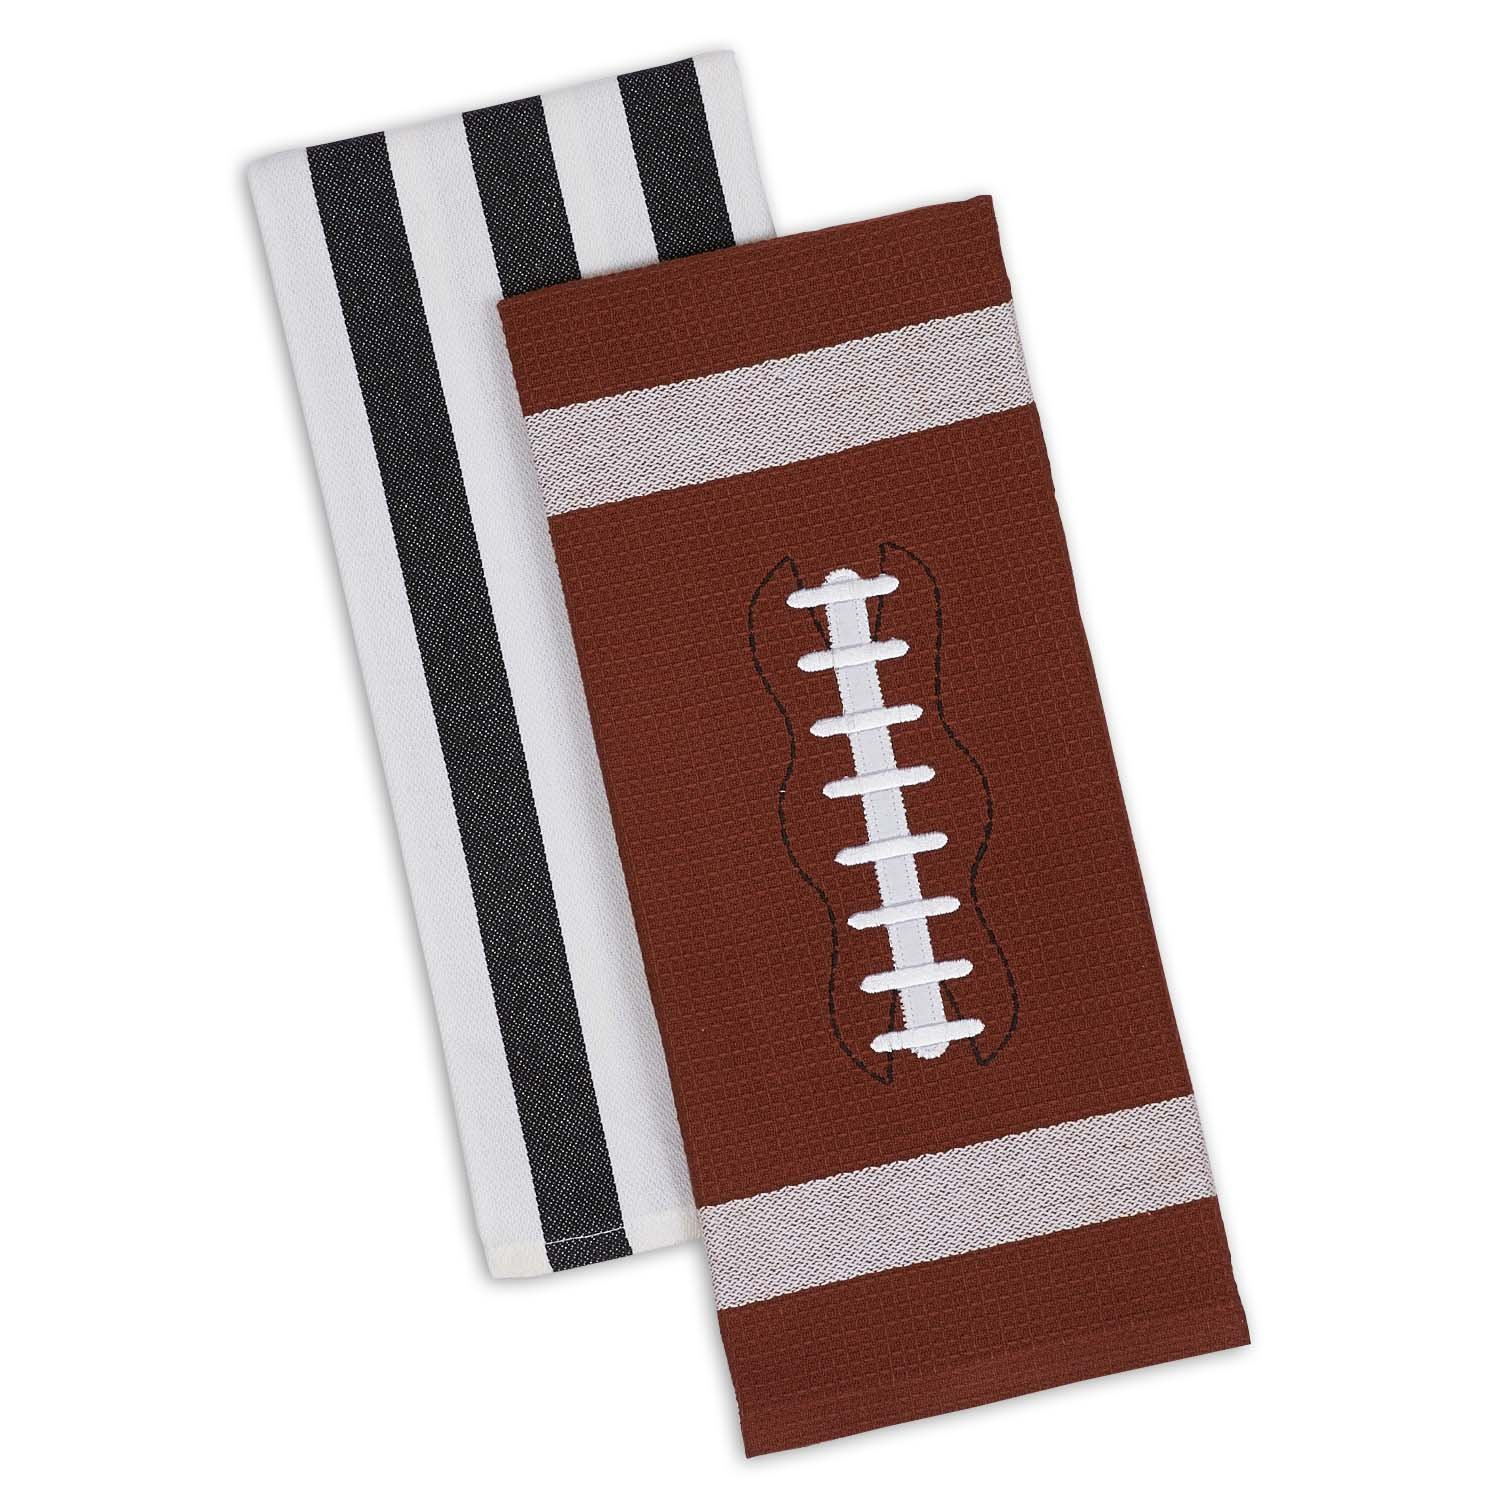 DII 100% Cotton, Machine Washable, Everyday Kitchen Basic Printed Game Day Dishtowel, 18x28'', Set of 2- Football & Stripes